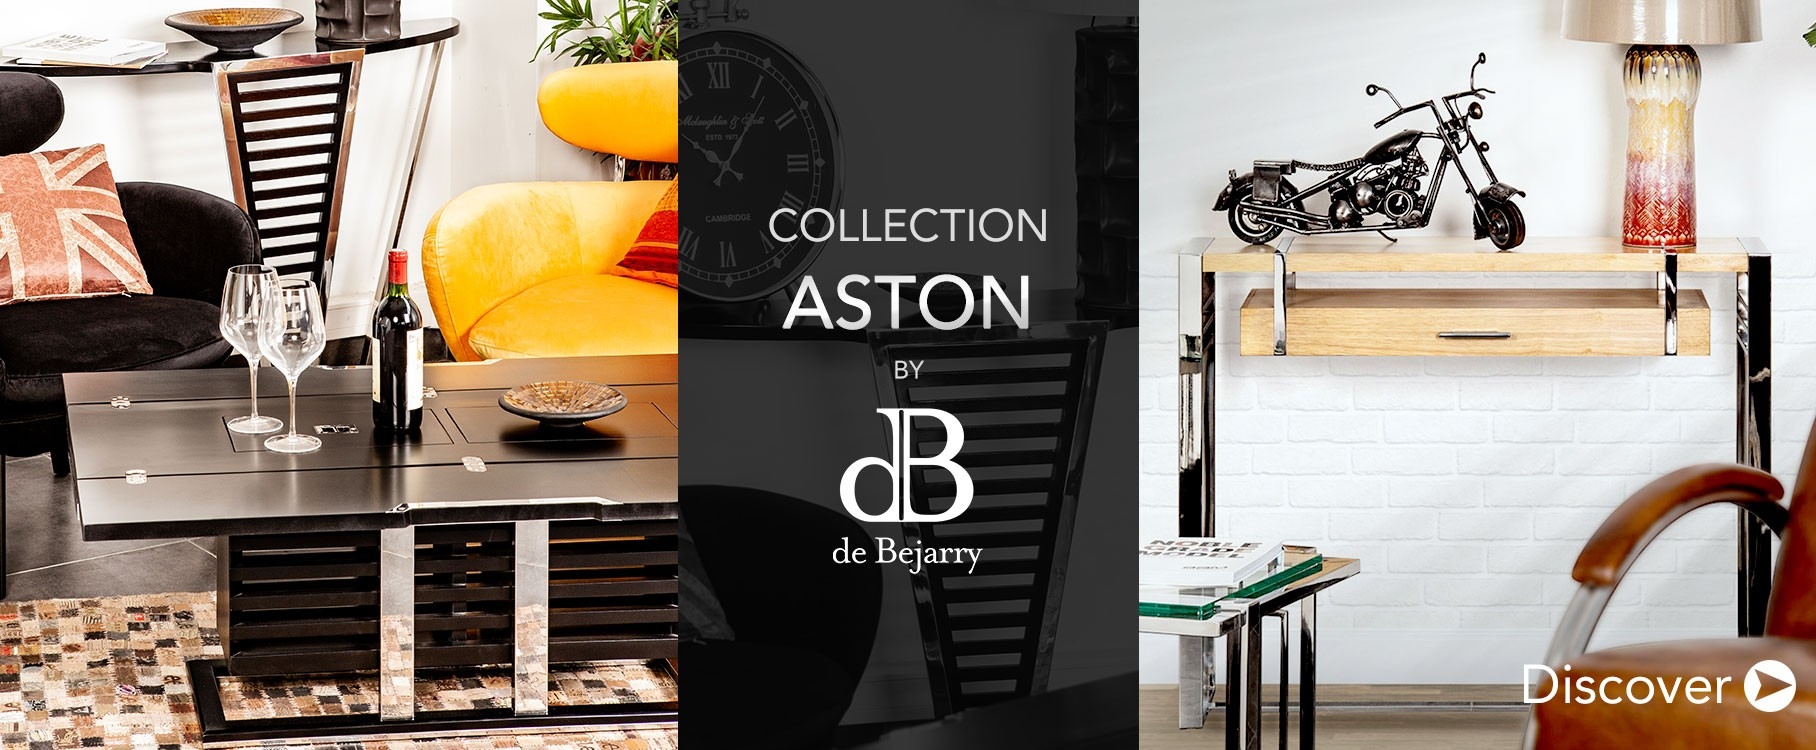 Aston industrial furniture collection